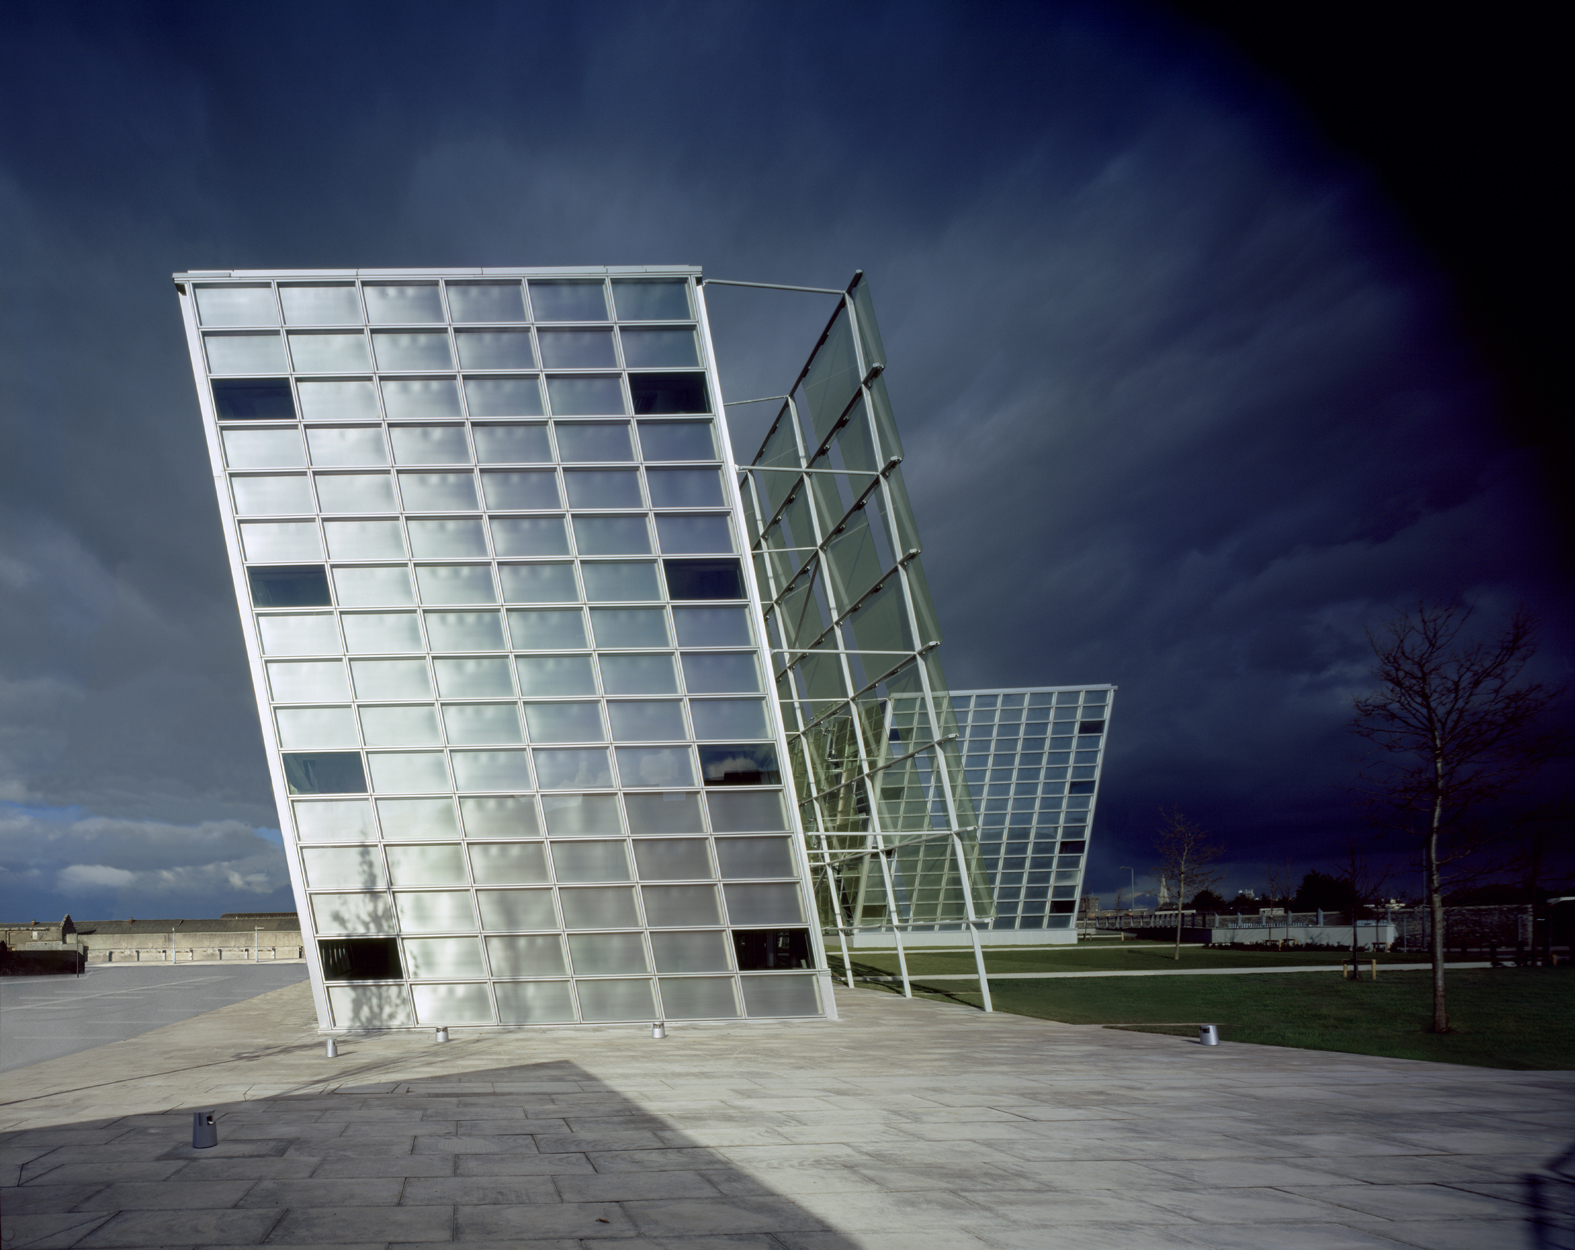 heneghan peng architects